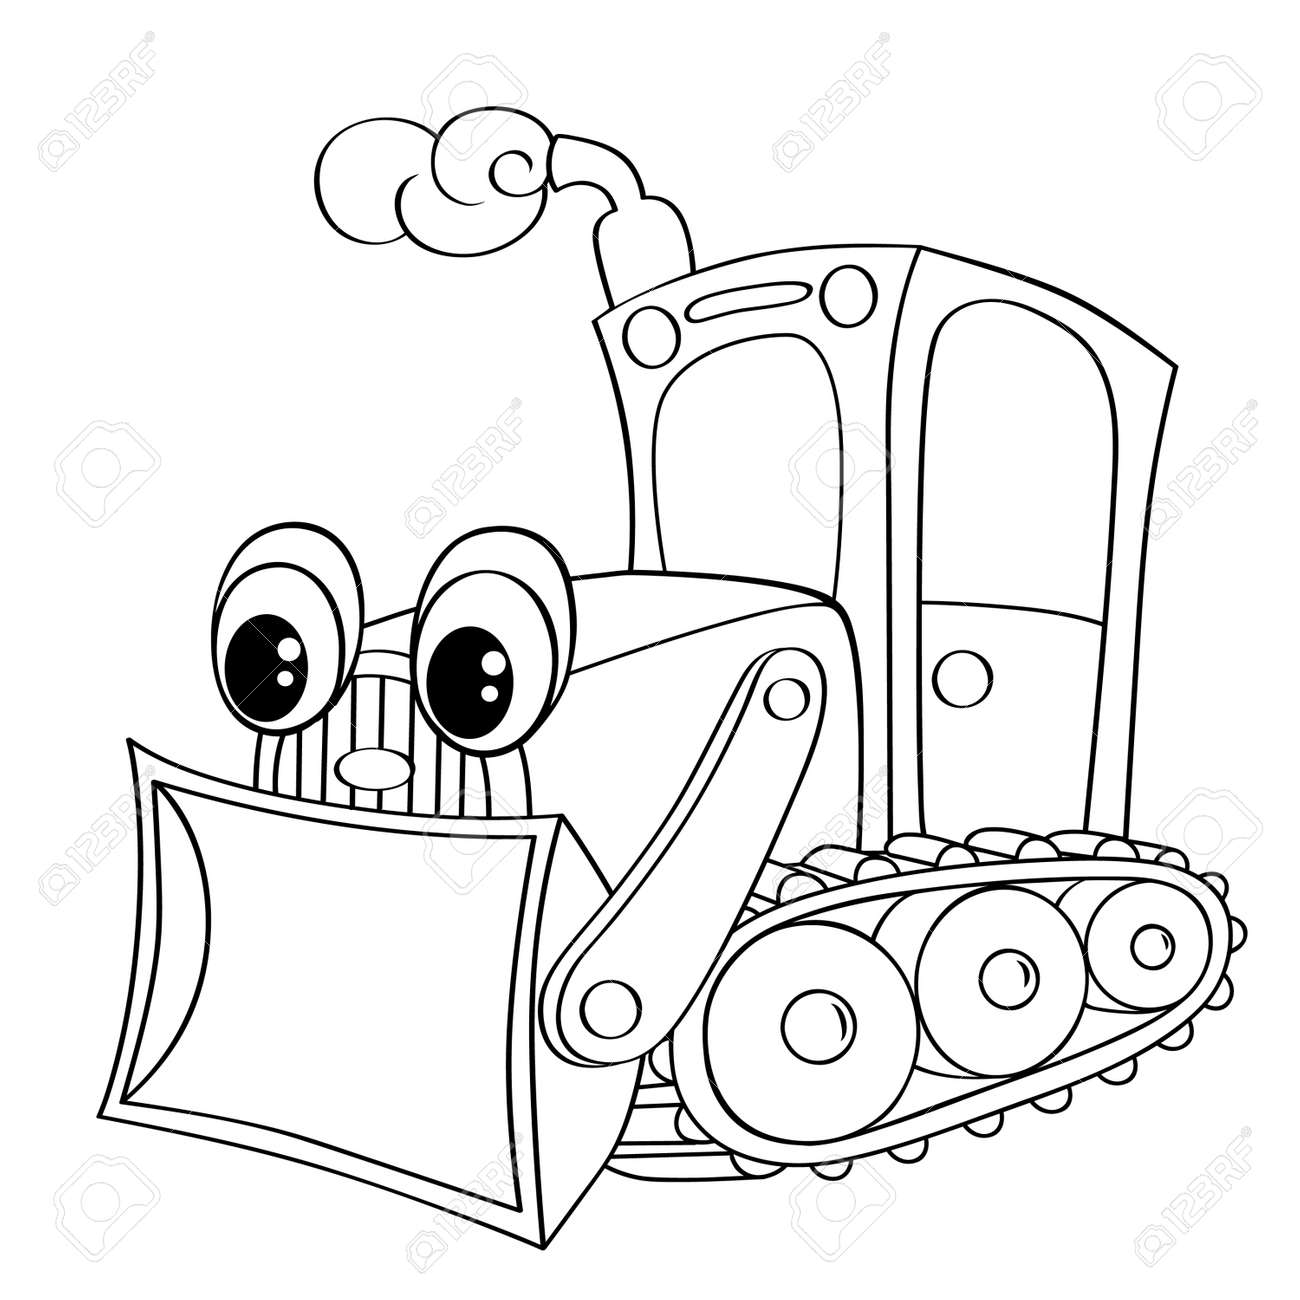 Funny Cartoon Bulldozer Black And White Vector Illustration For Coloring Book Stock